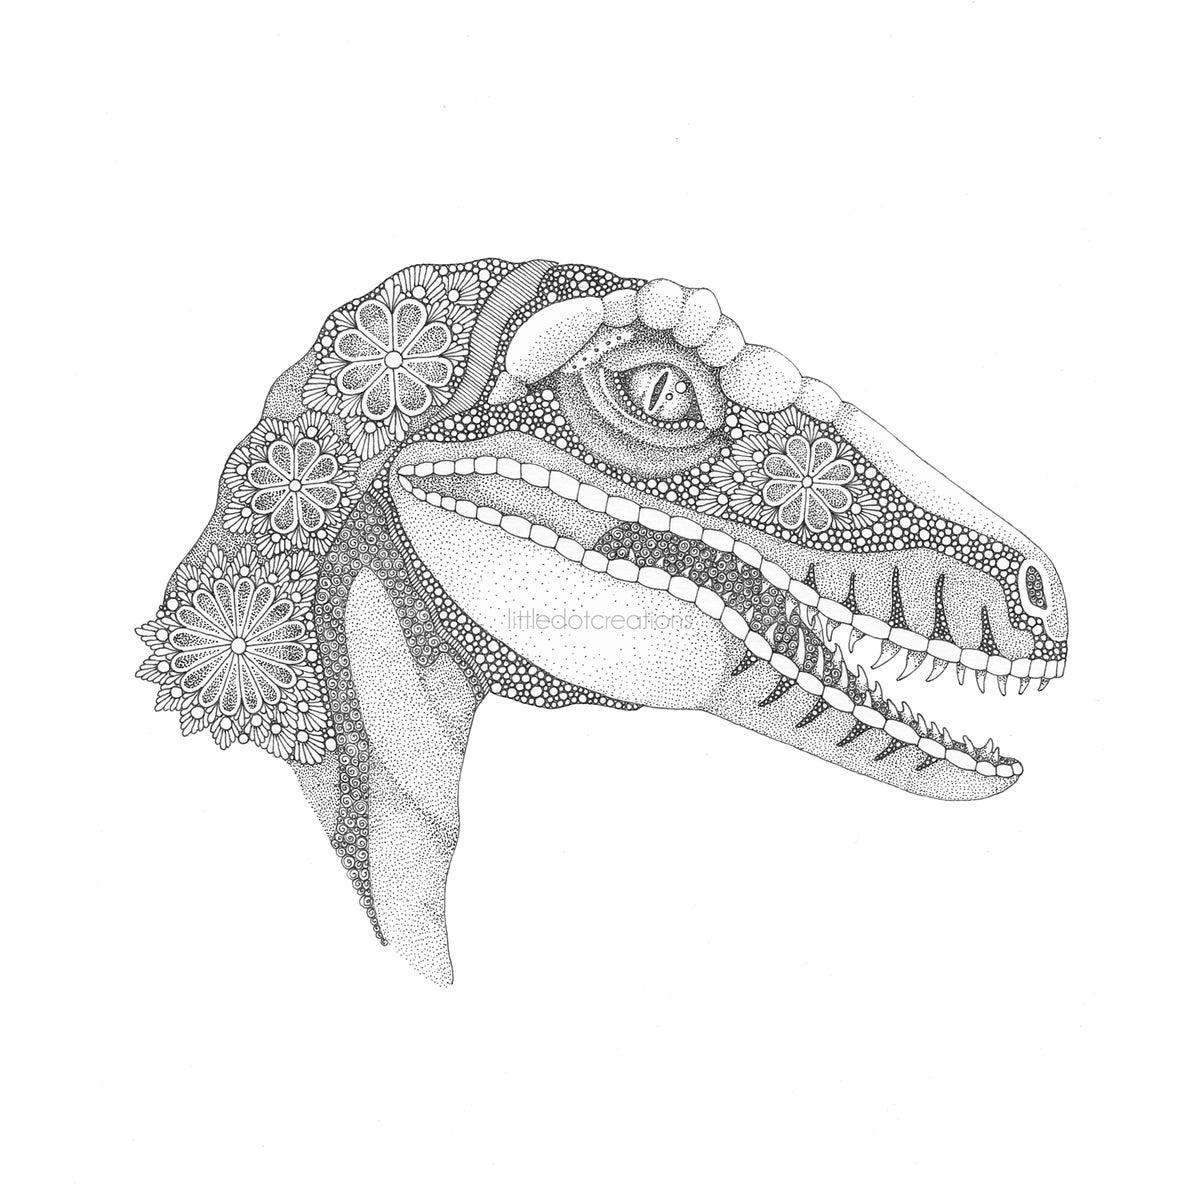 Image of Clever Girl...